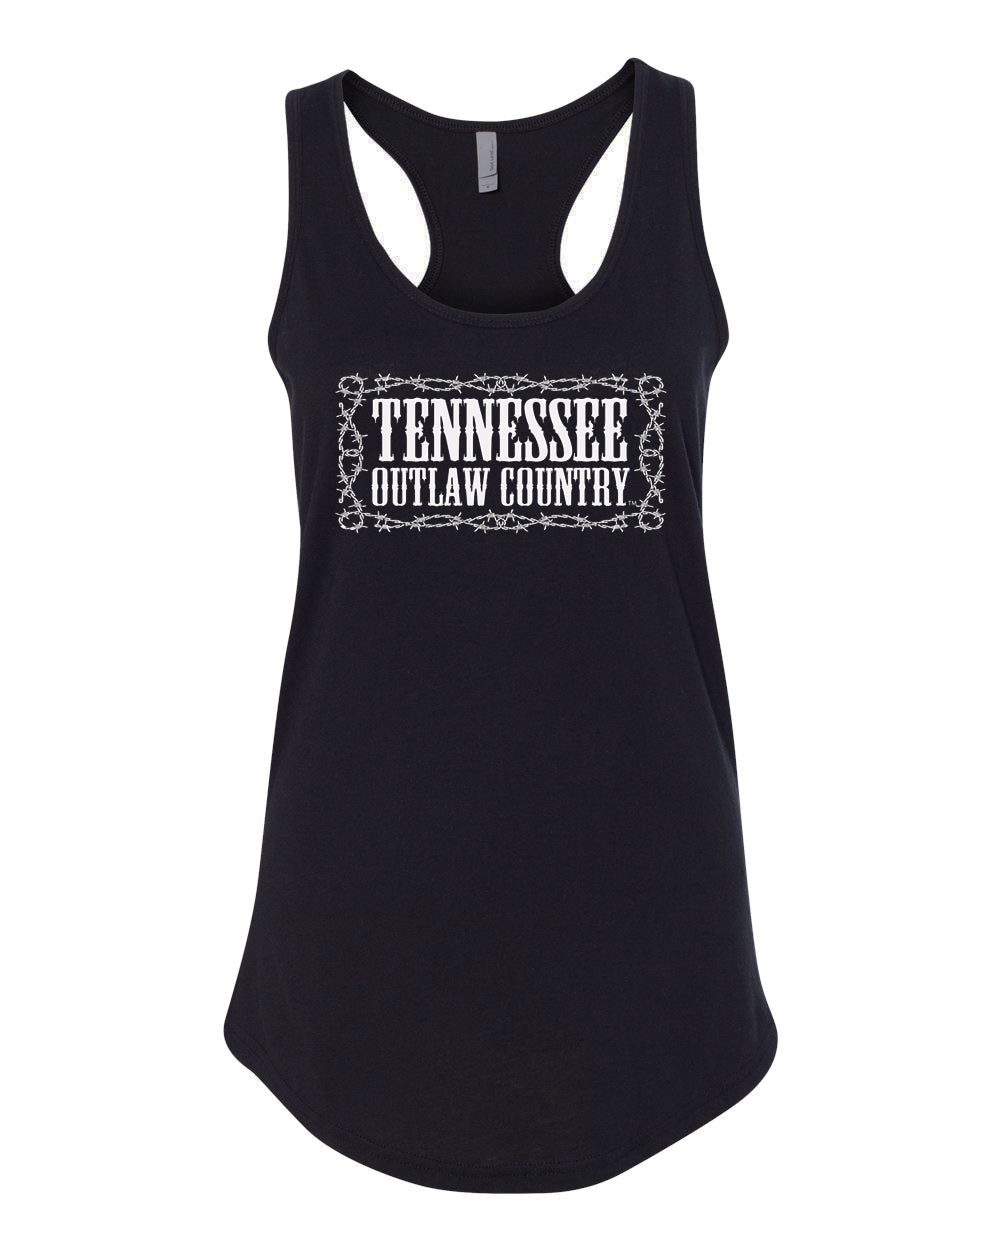 Tennessee Outlaw Country Women's Tank